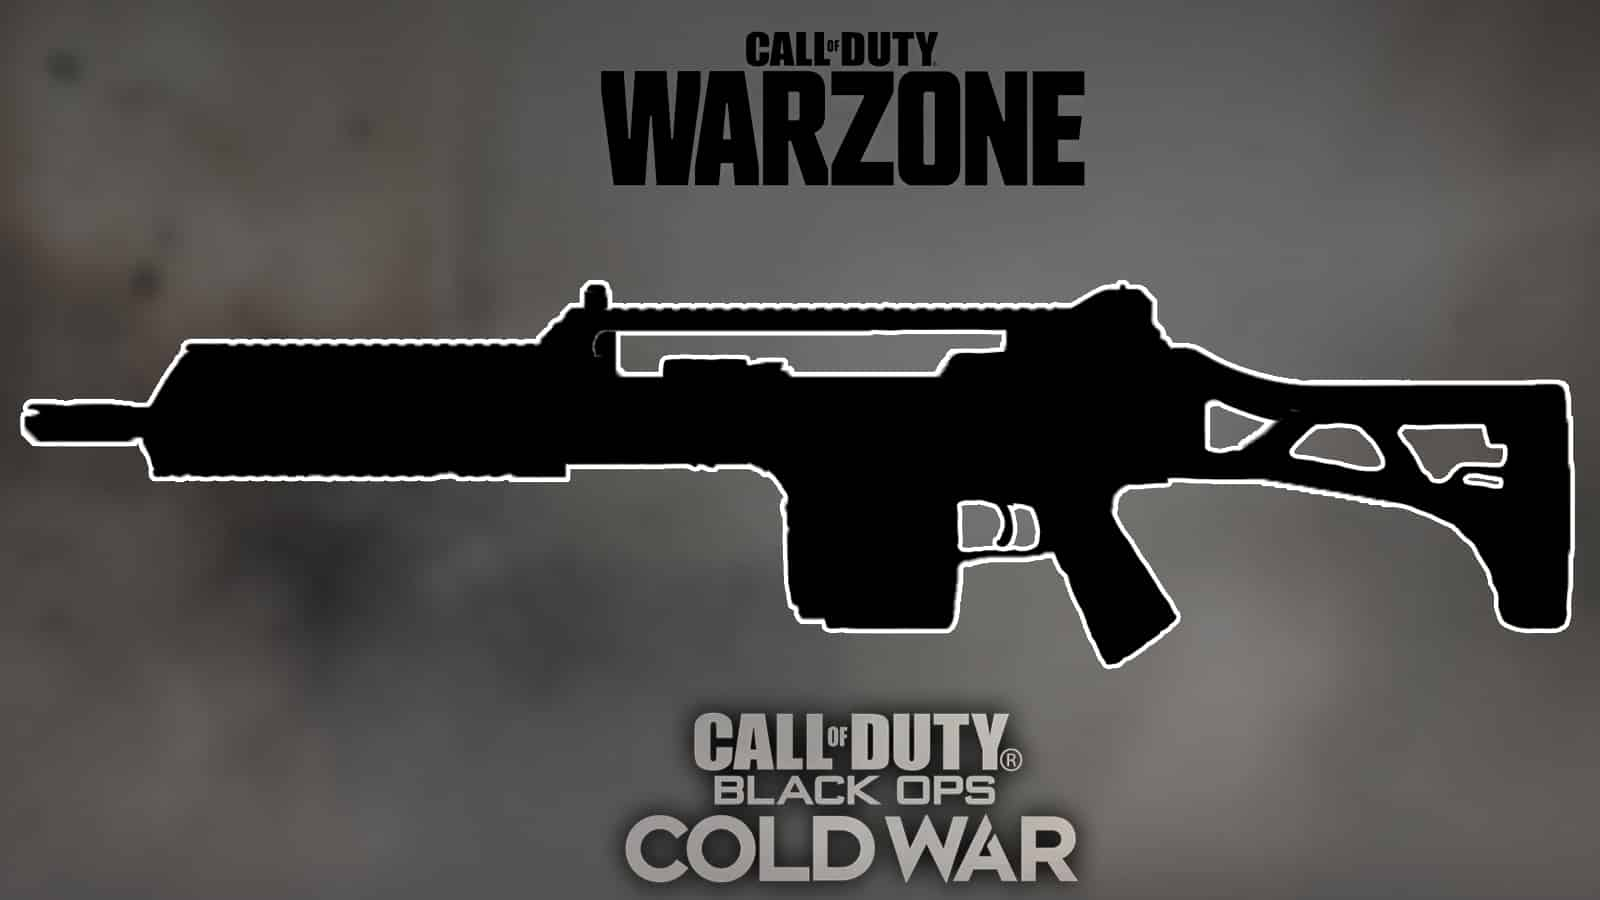 Silhouette MG36 Logo Warzone Et Cold War